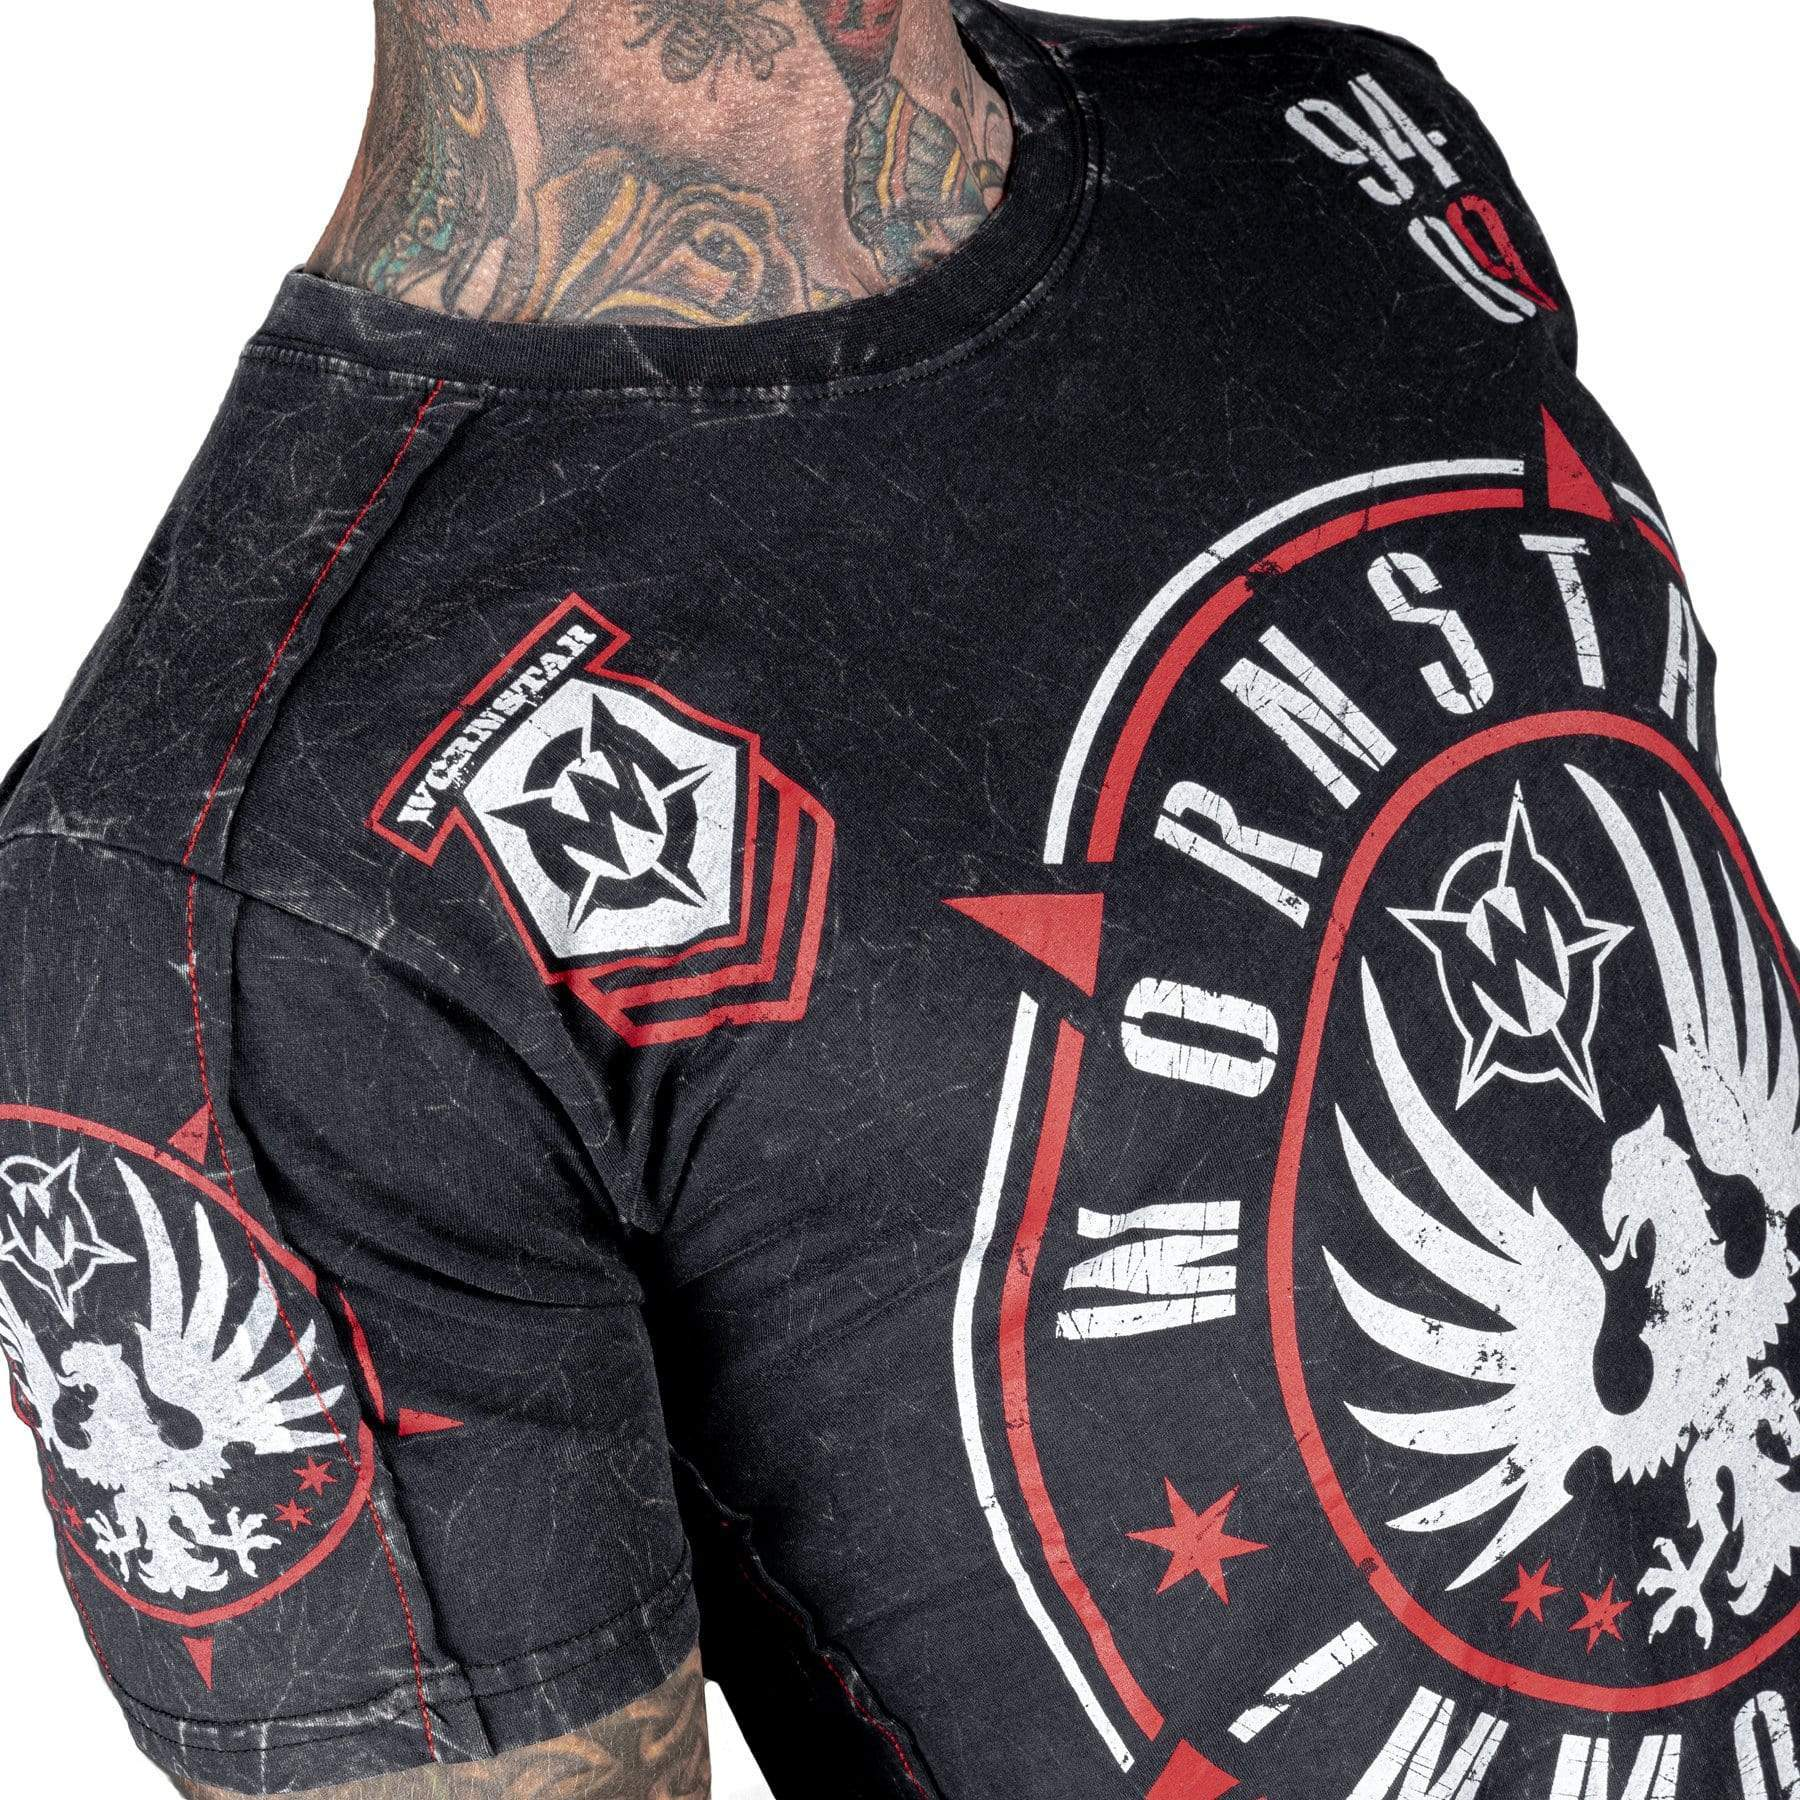 Wornstar Immortals Eagle T-shirt